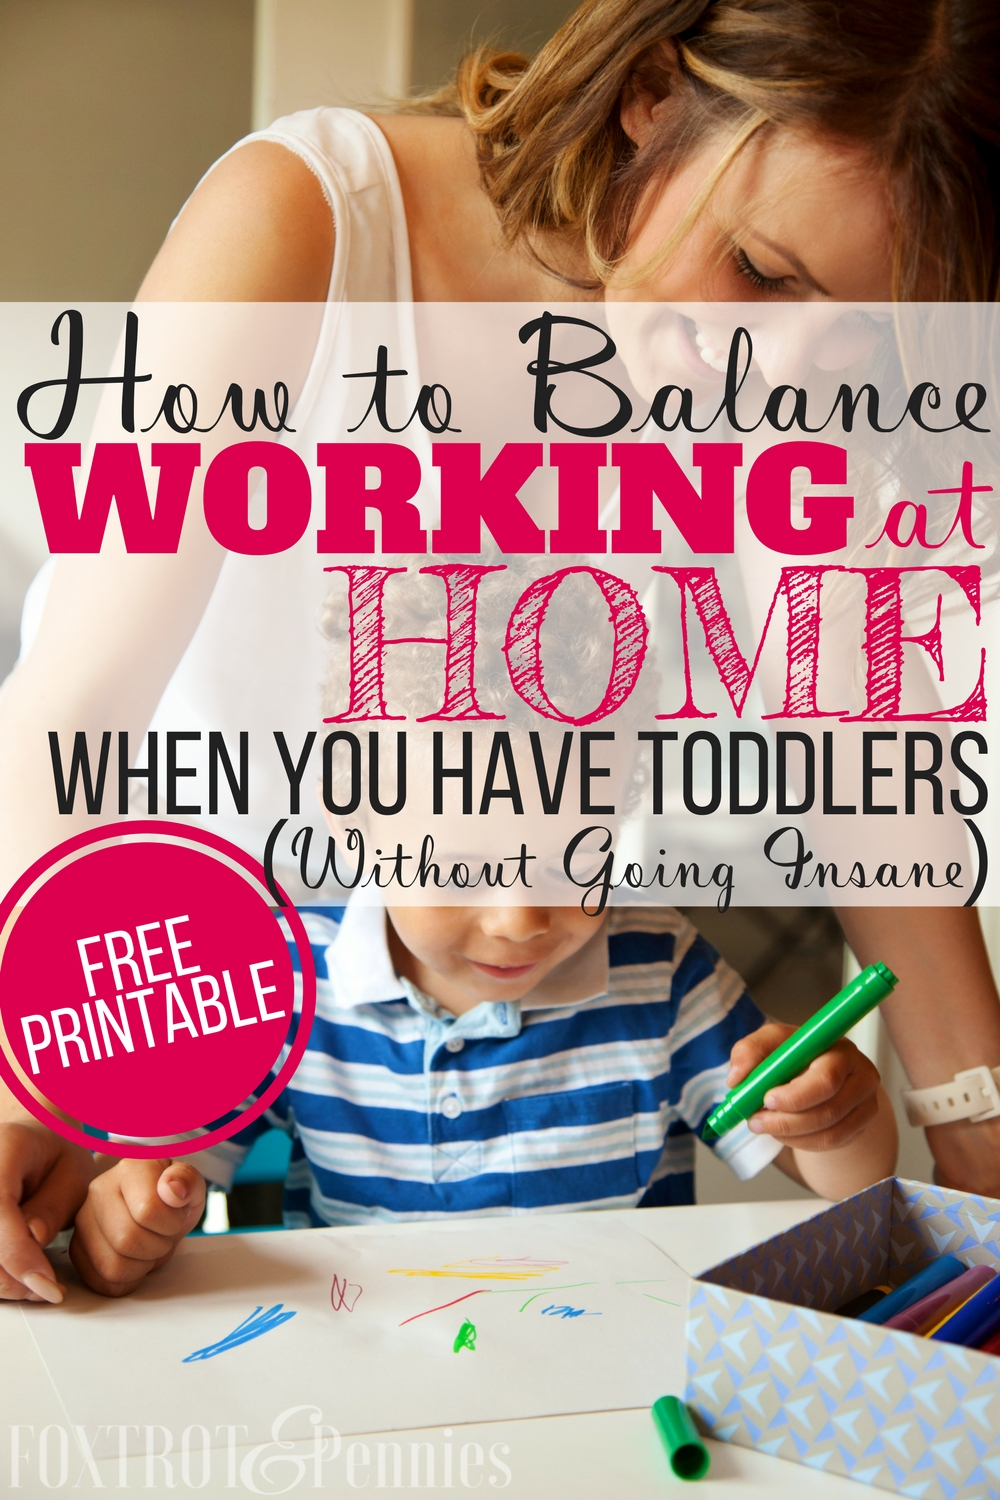 Yes! When I decided to be a stay at home mom and start a business working at home, I really struggled with work life balance and making time for both my work and my kids-- plus my toddler could never seem to entertain himself! Now I am so much more productive and my kids are entertained all day (BONUS: housework is getting done too!!)